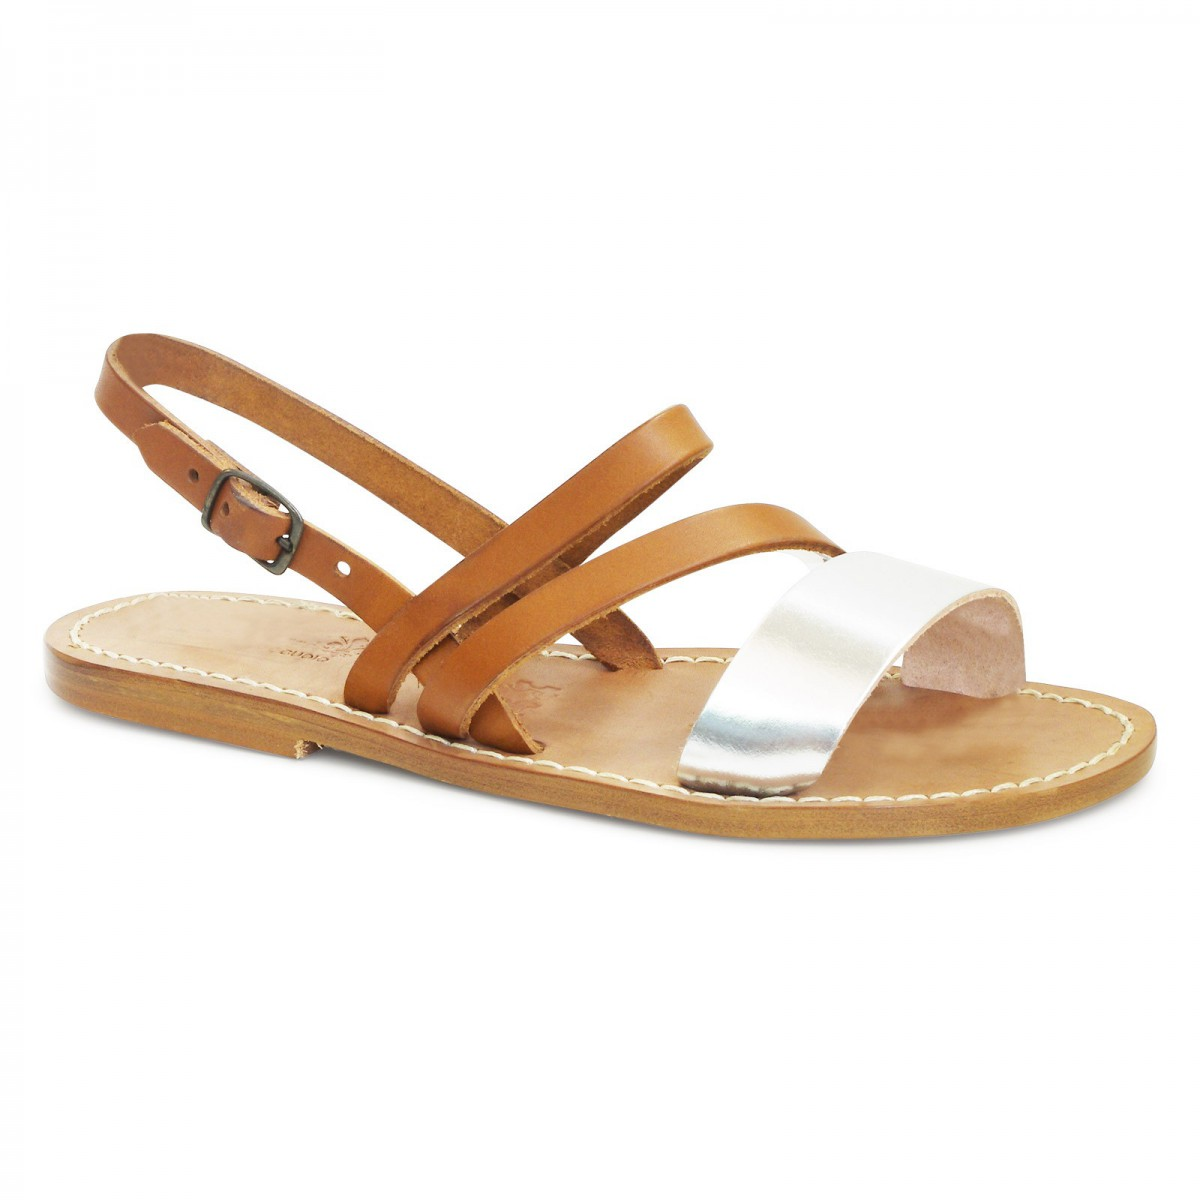 Women S Flat Sandals Handmade In Tan And Silver Leather